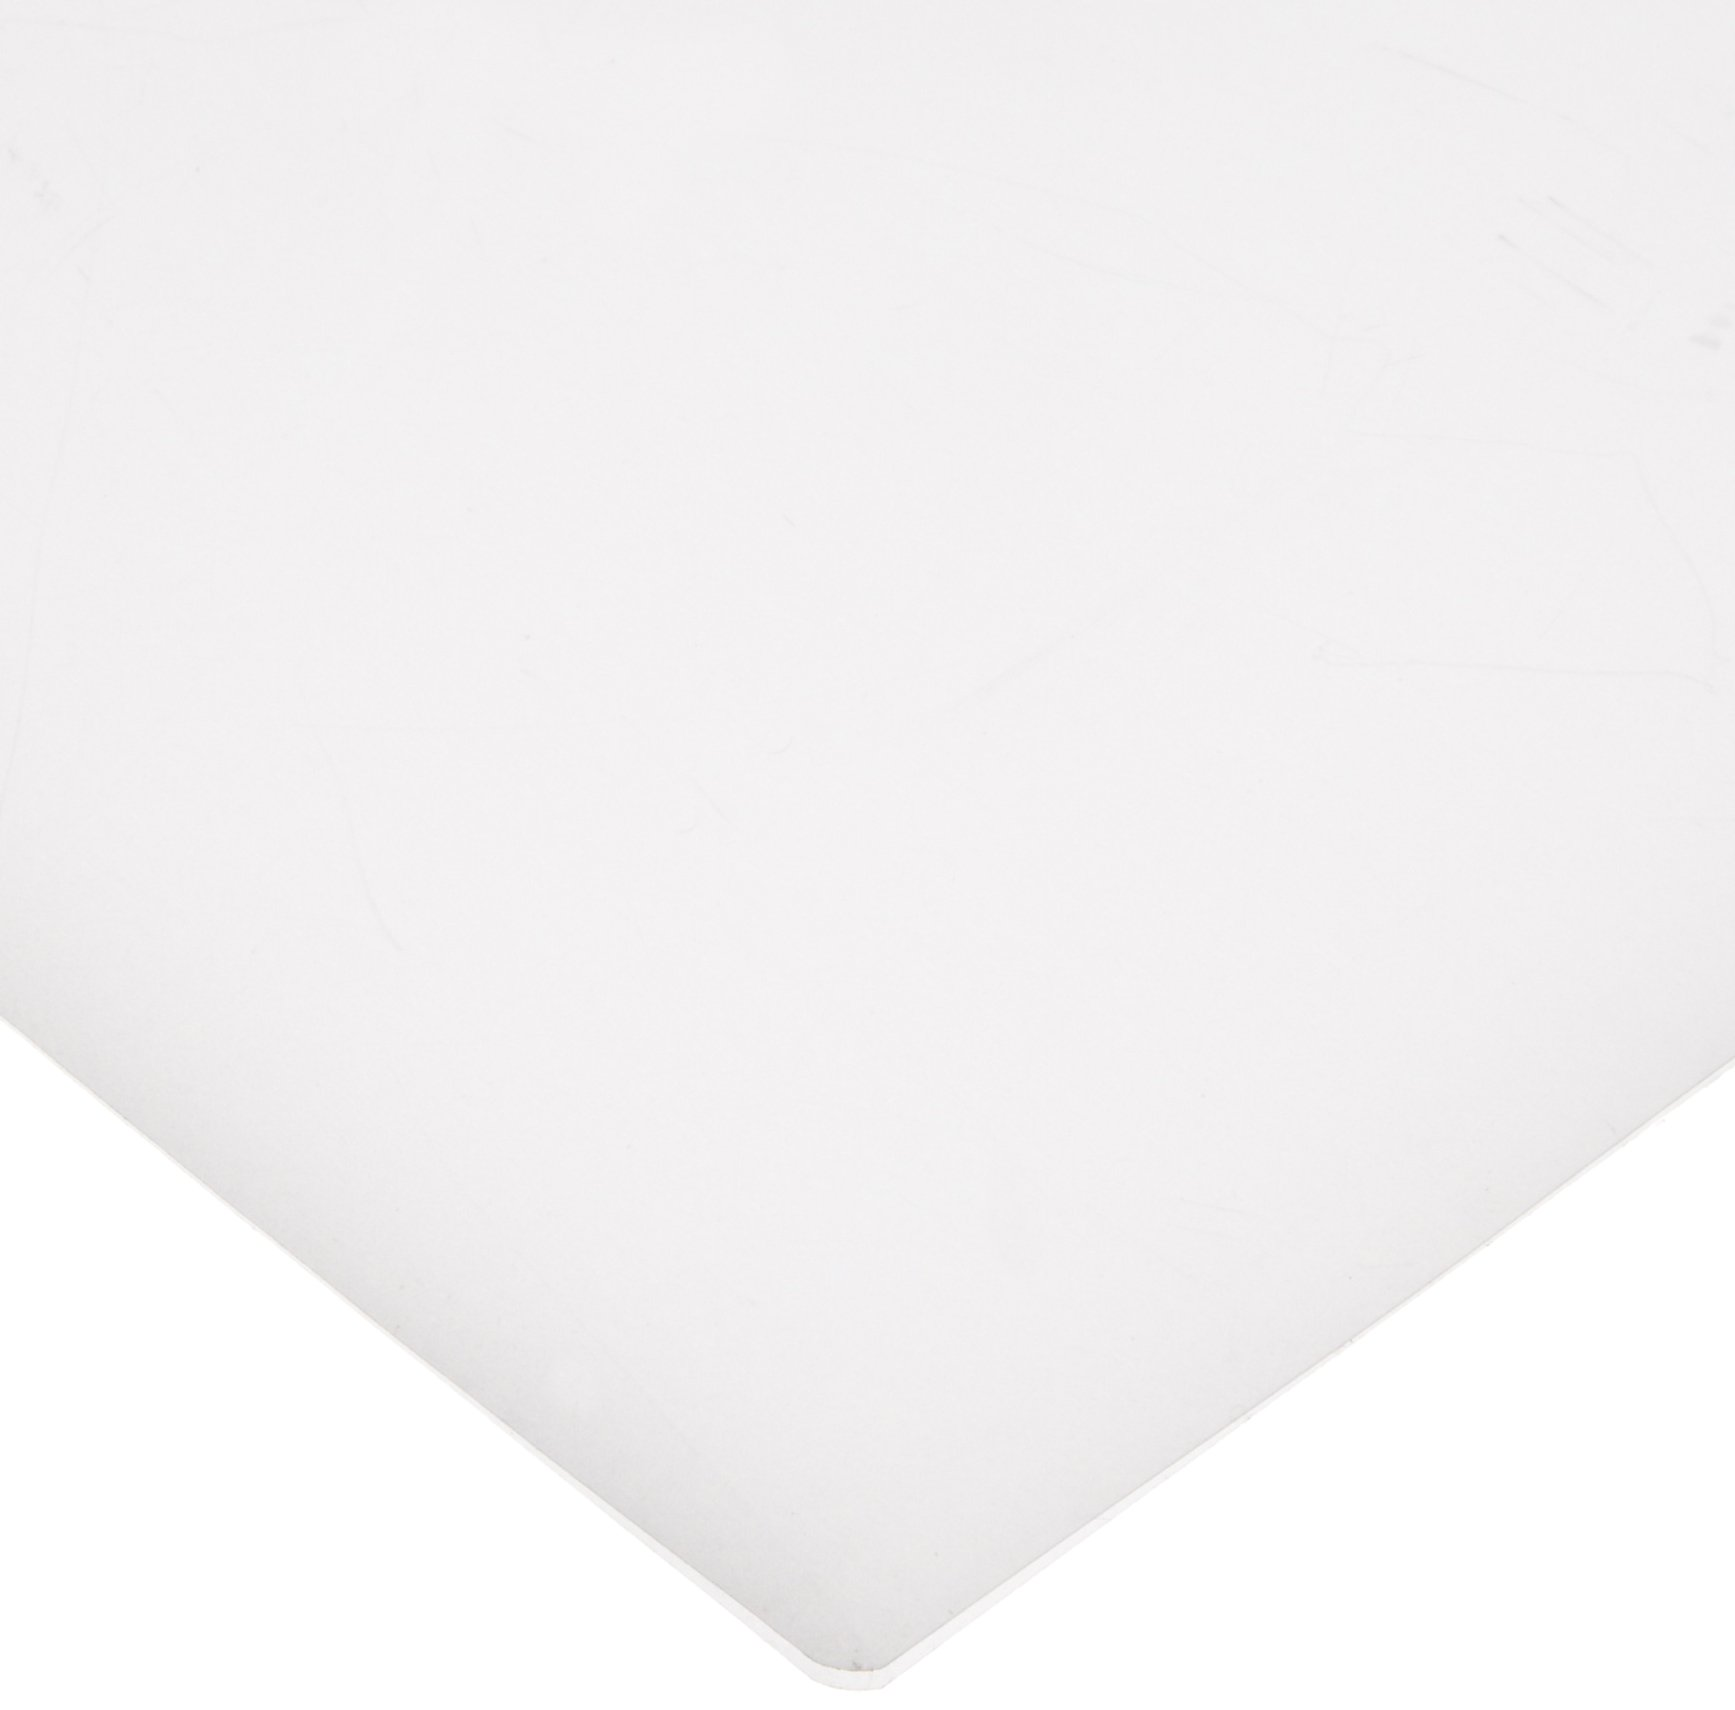 R&R Lotion SD-SHEETS-02 Static Dissipative Laminating Sheet, 17'' Length x 12-1/4'' Width (Pack of 100 Sheets)